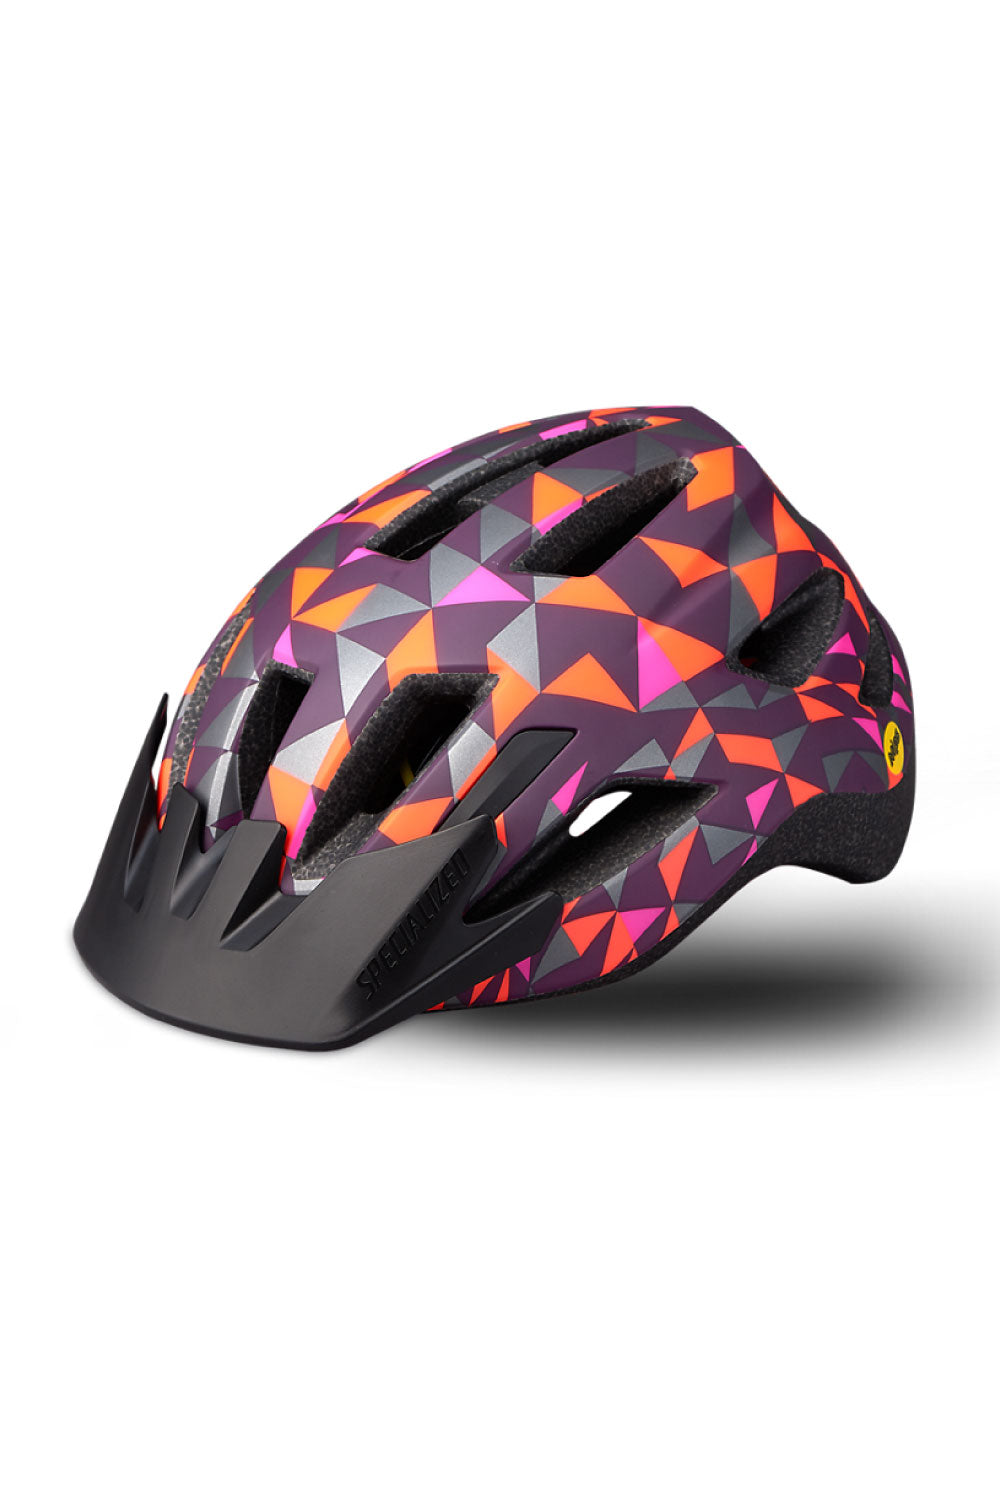 Specialized Shuffle Child LED MIPS Mountain Bike Helmet (4-7 Years Old)